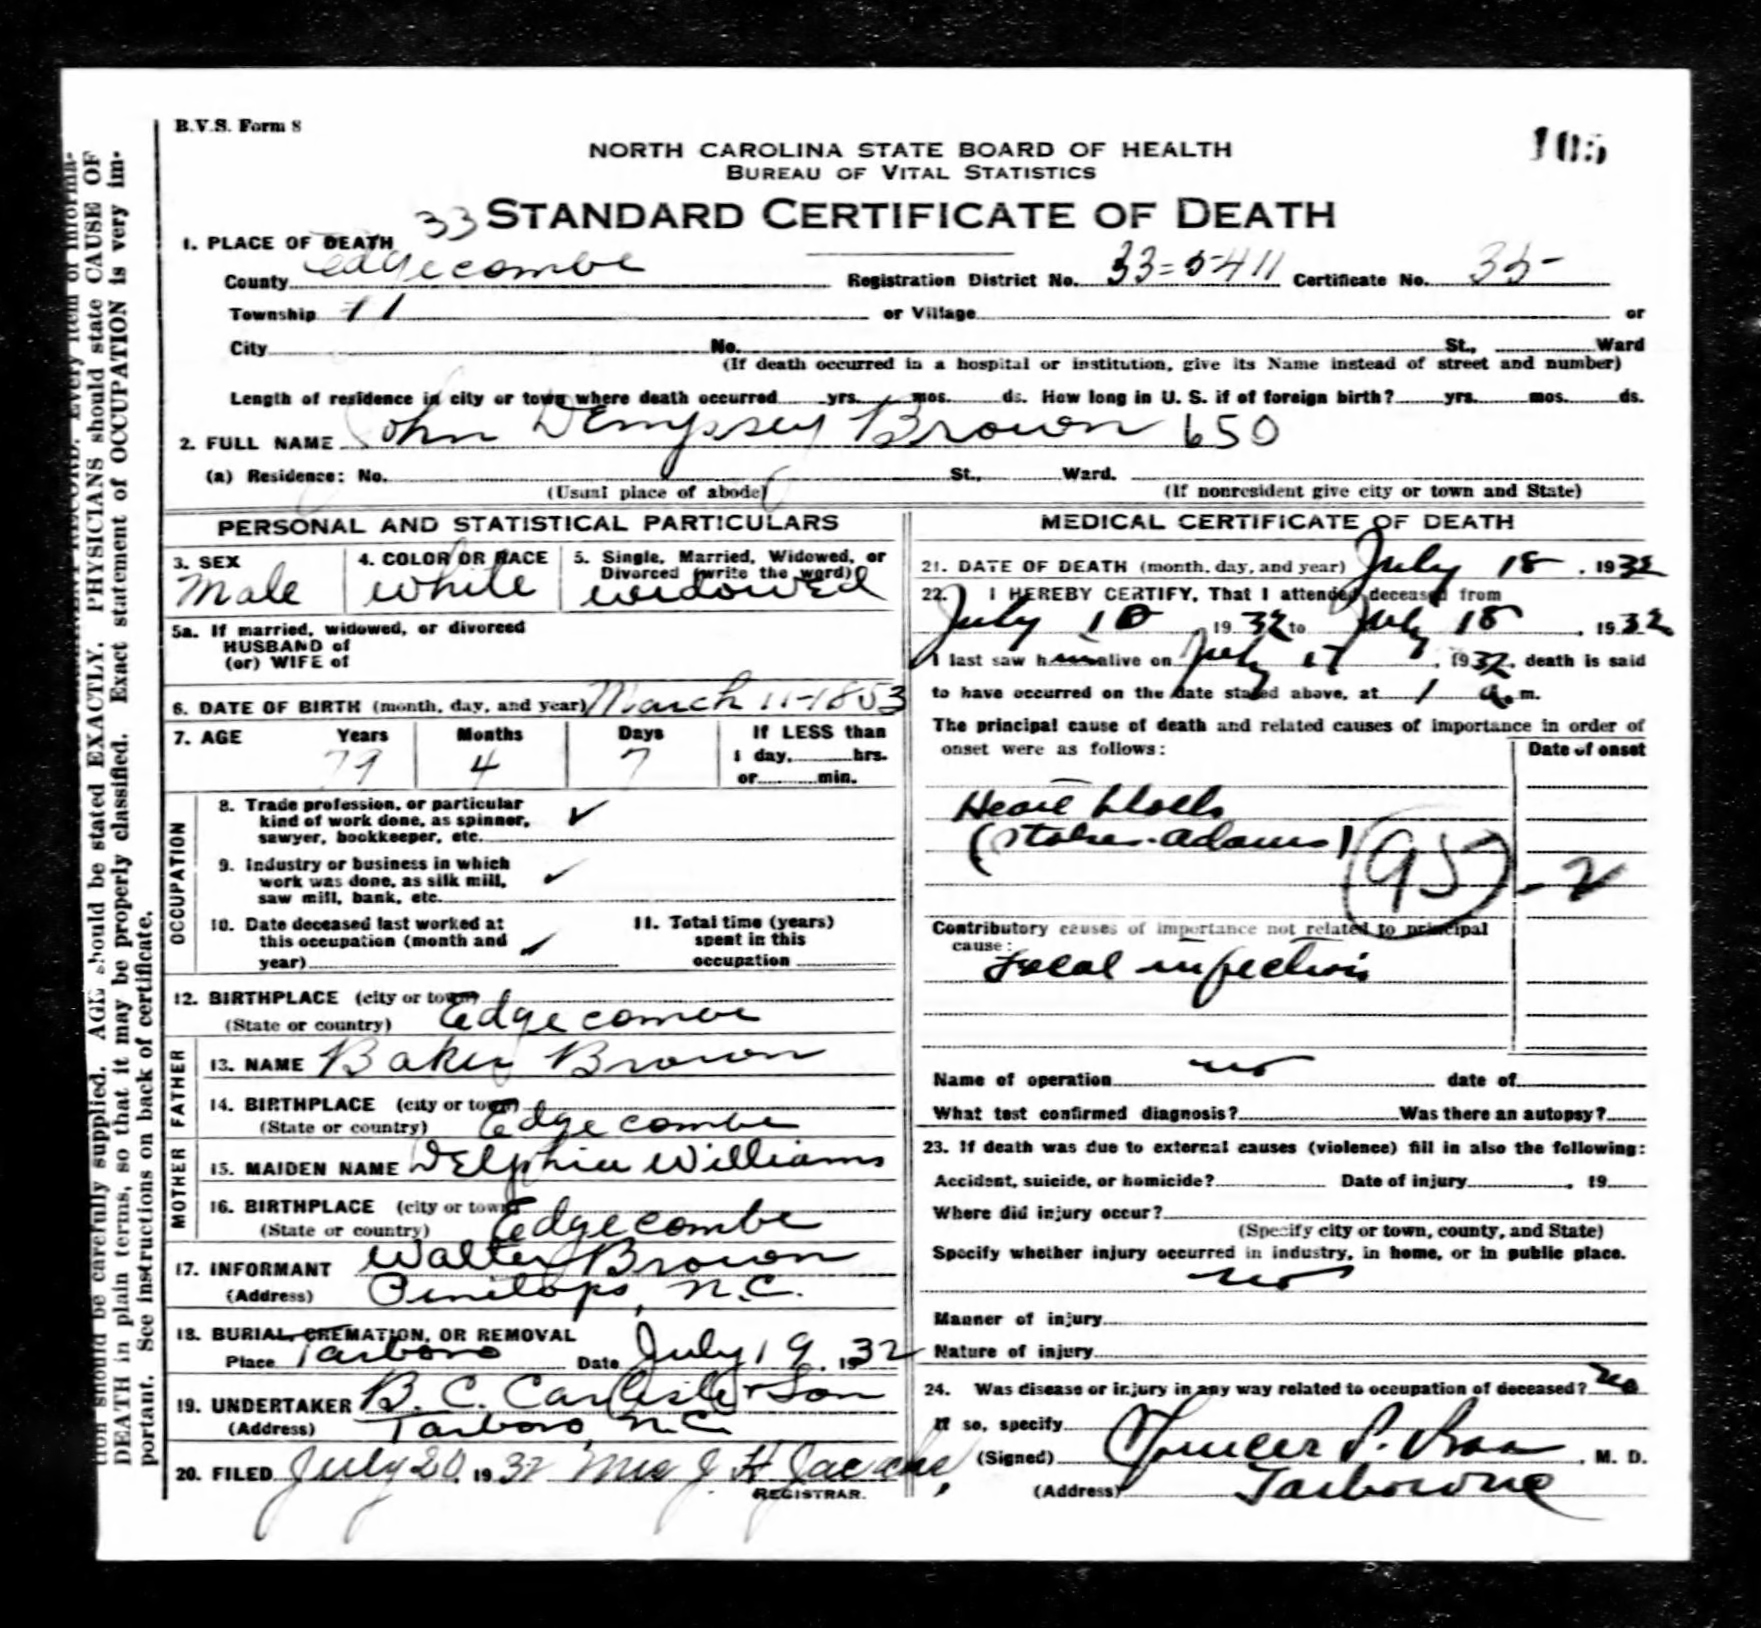 John dempsey brown 1853 1932 find a grave memorial north carolina death certificate john dempsey brown name john dempsey brown gender male race white age 79 birth date 11 mar 1853 birth place xflitez Gallery